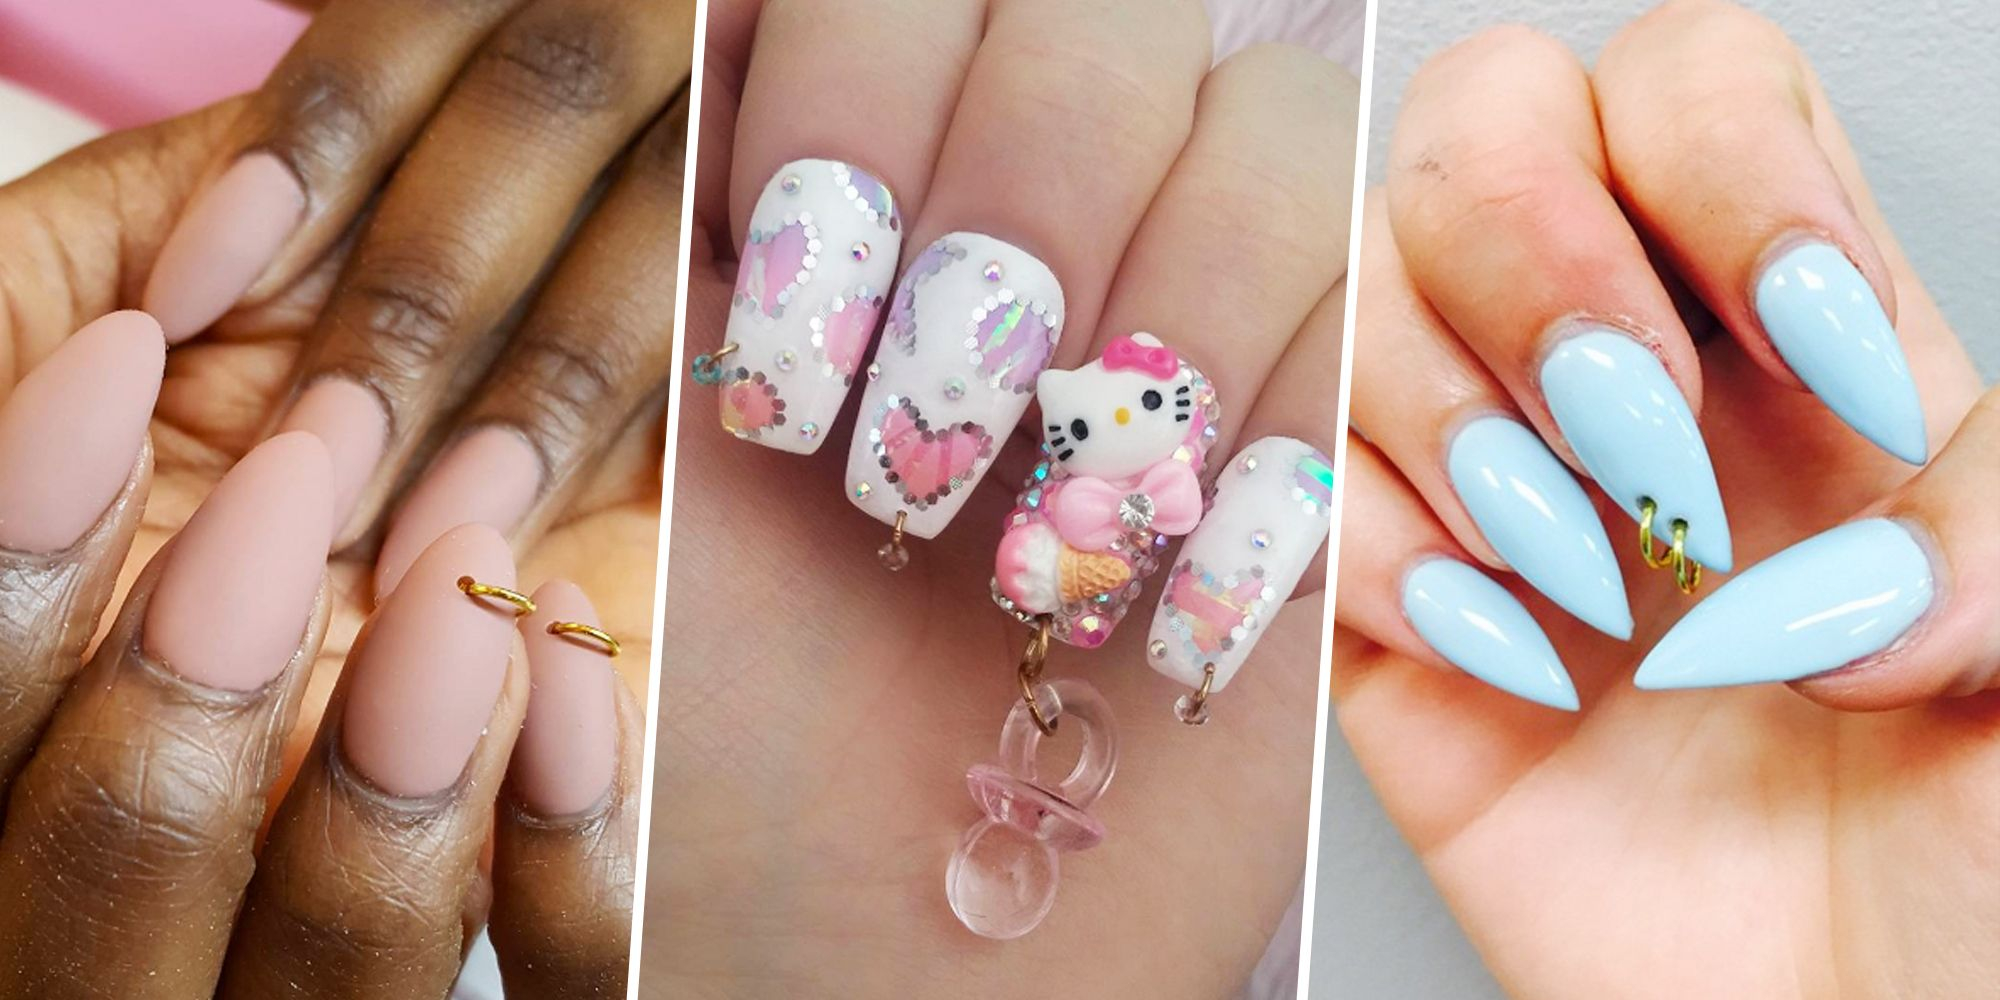 Nail Piercing Trend - Nail Dangle Accessories